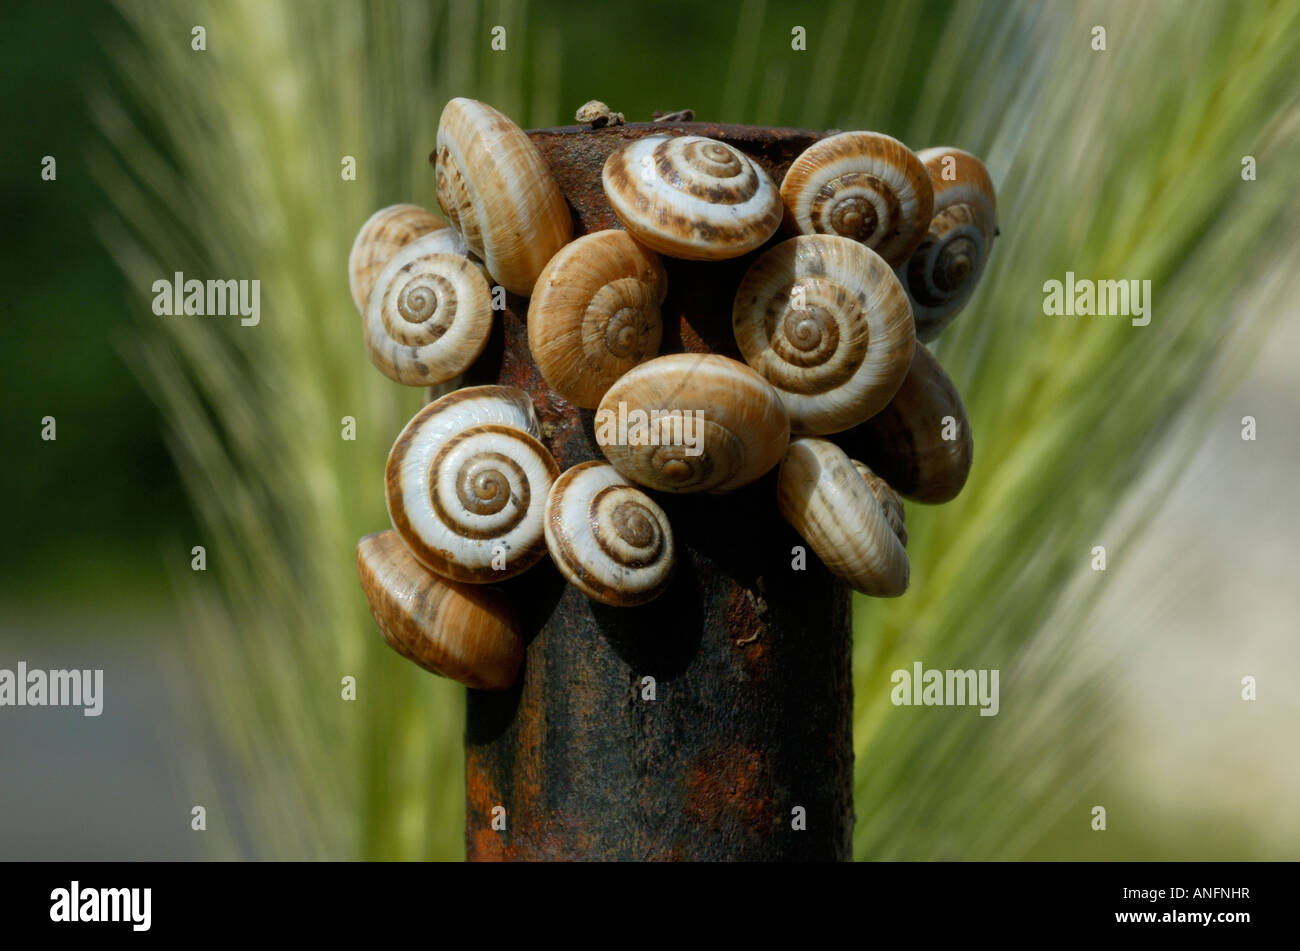 Snails on top of iron post. - Stock Image